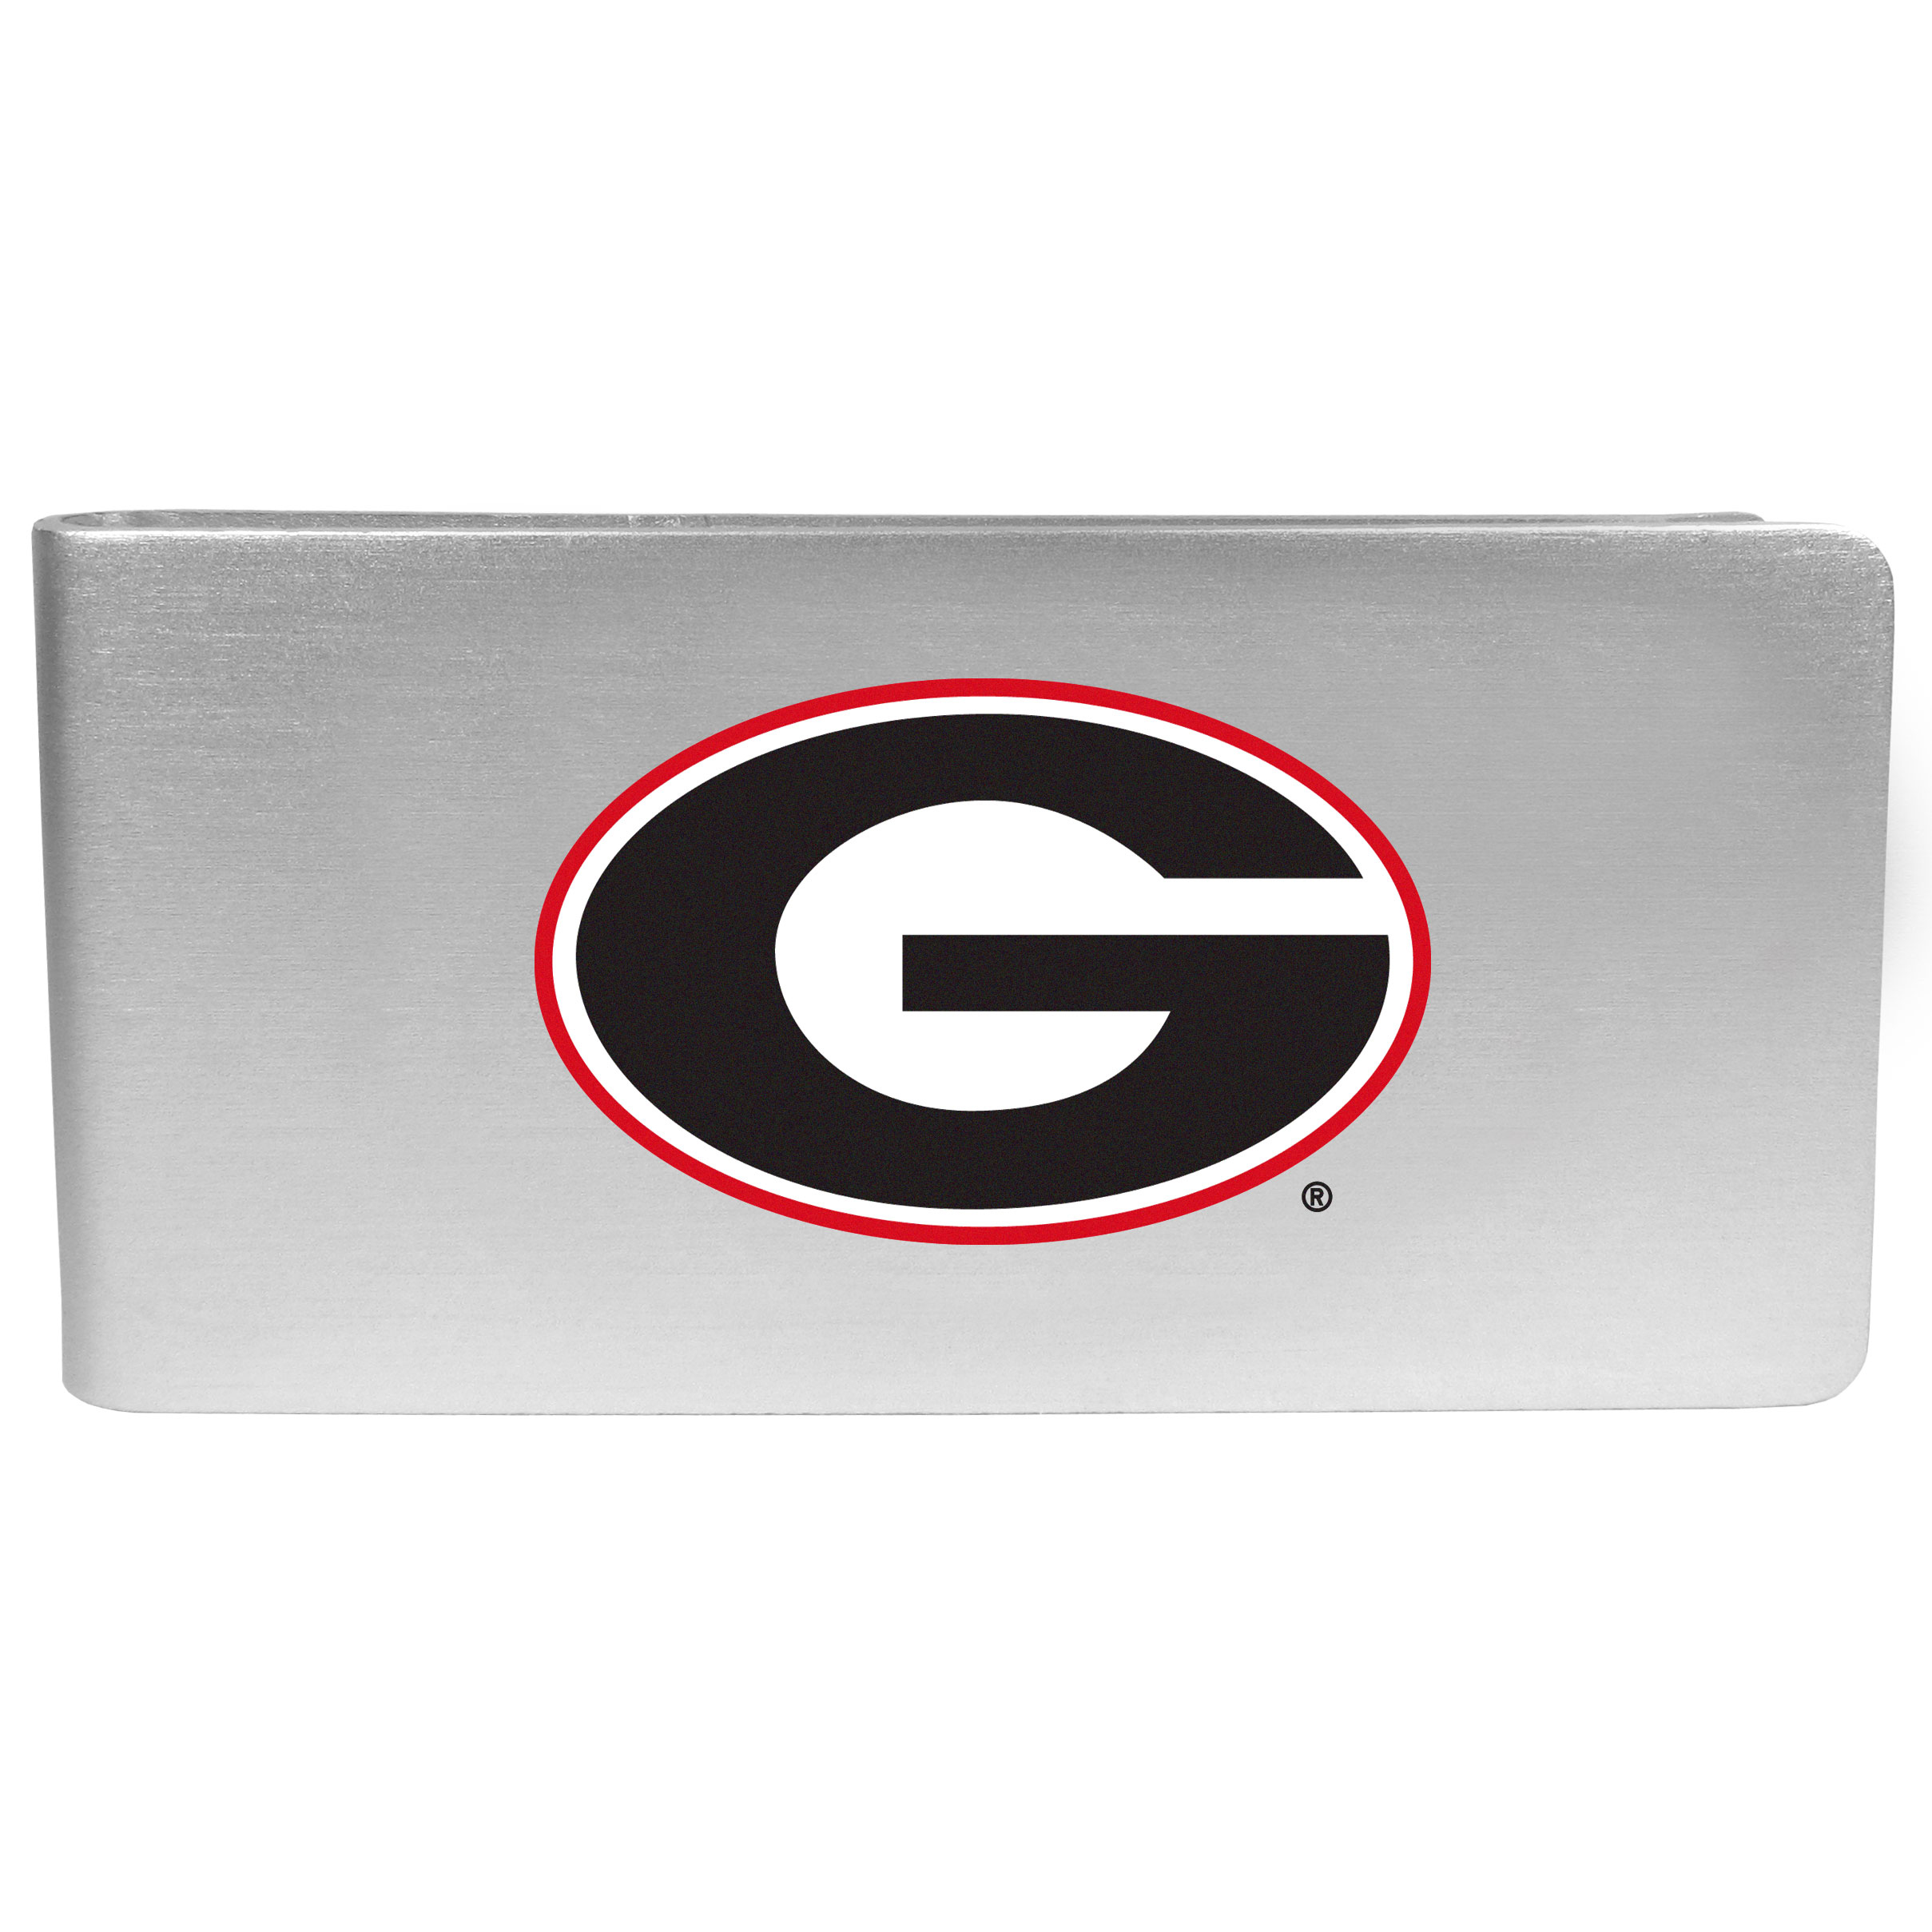 Georgia Bulldogs Logo Money Clip - Our brushed metal money clip has classic style and functionality. The attractive clip features the Georgia Bulldogs logo expertly printed on front.